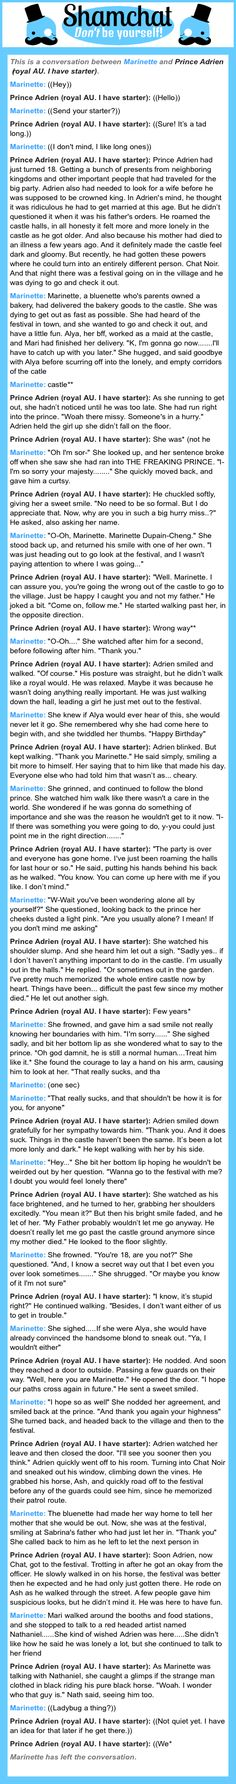 A conversation between Prince Adrien (royal AU. I have starter) and Marinette